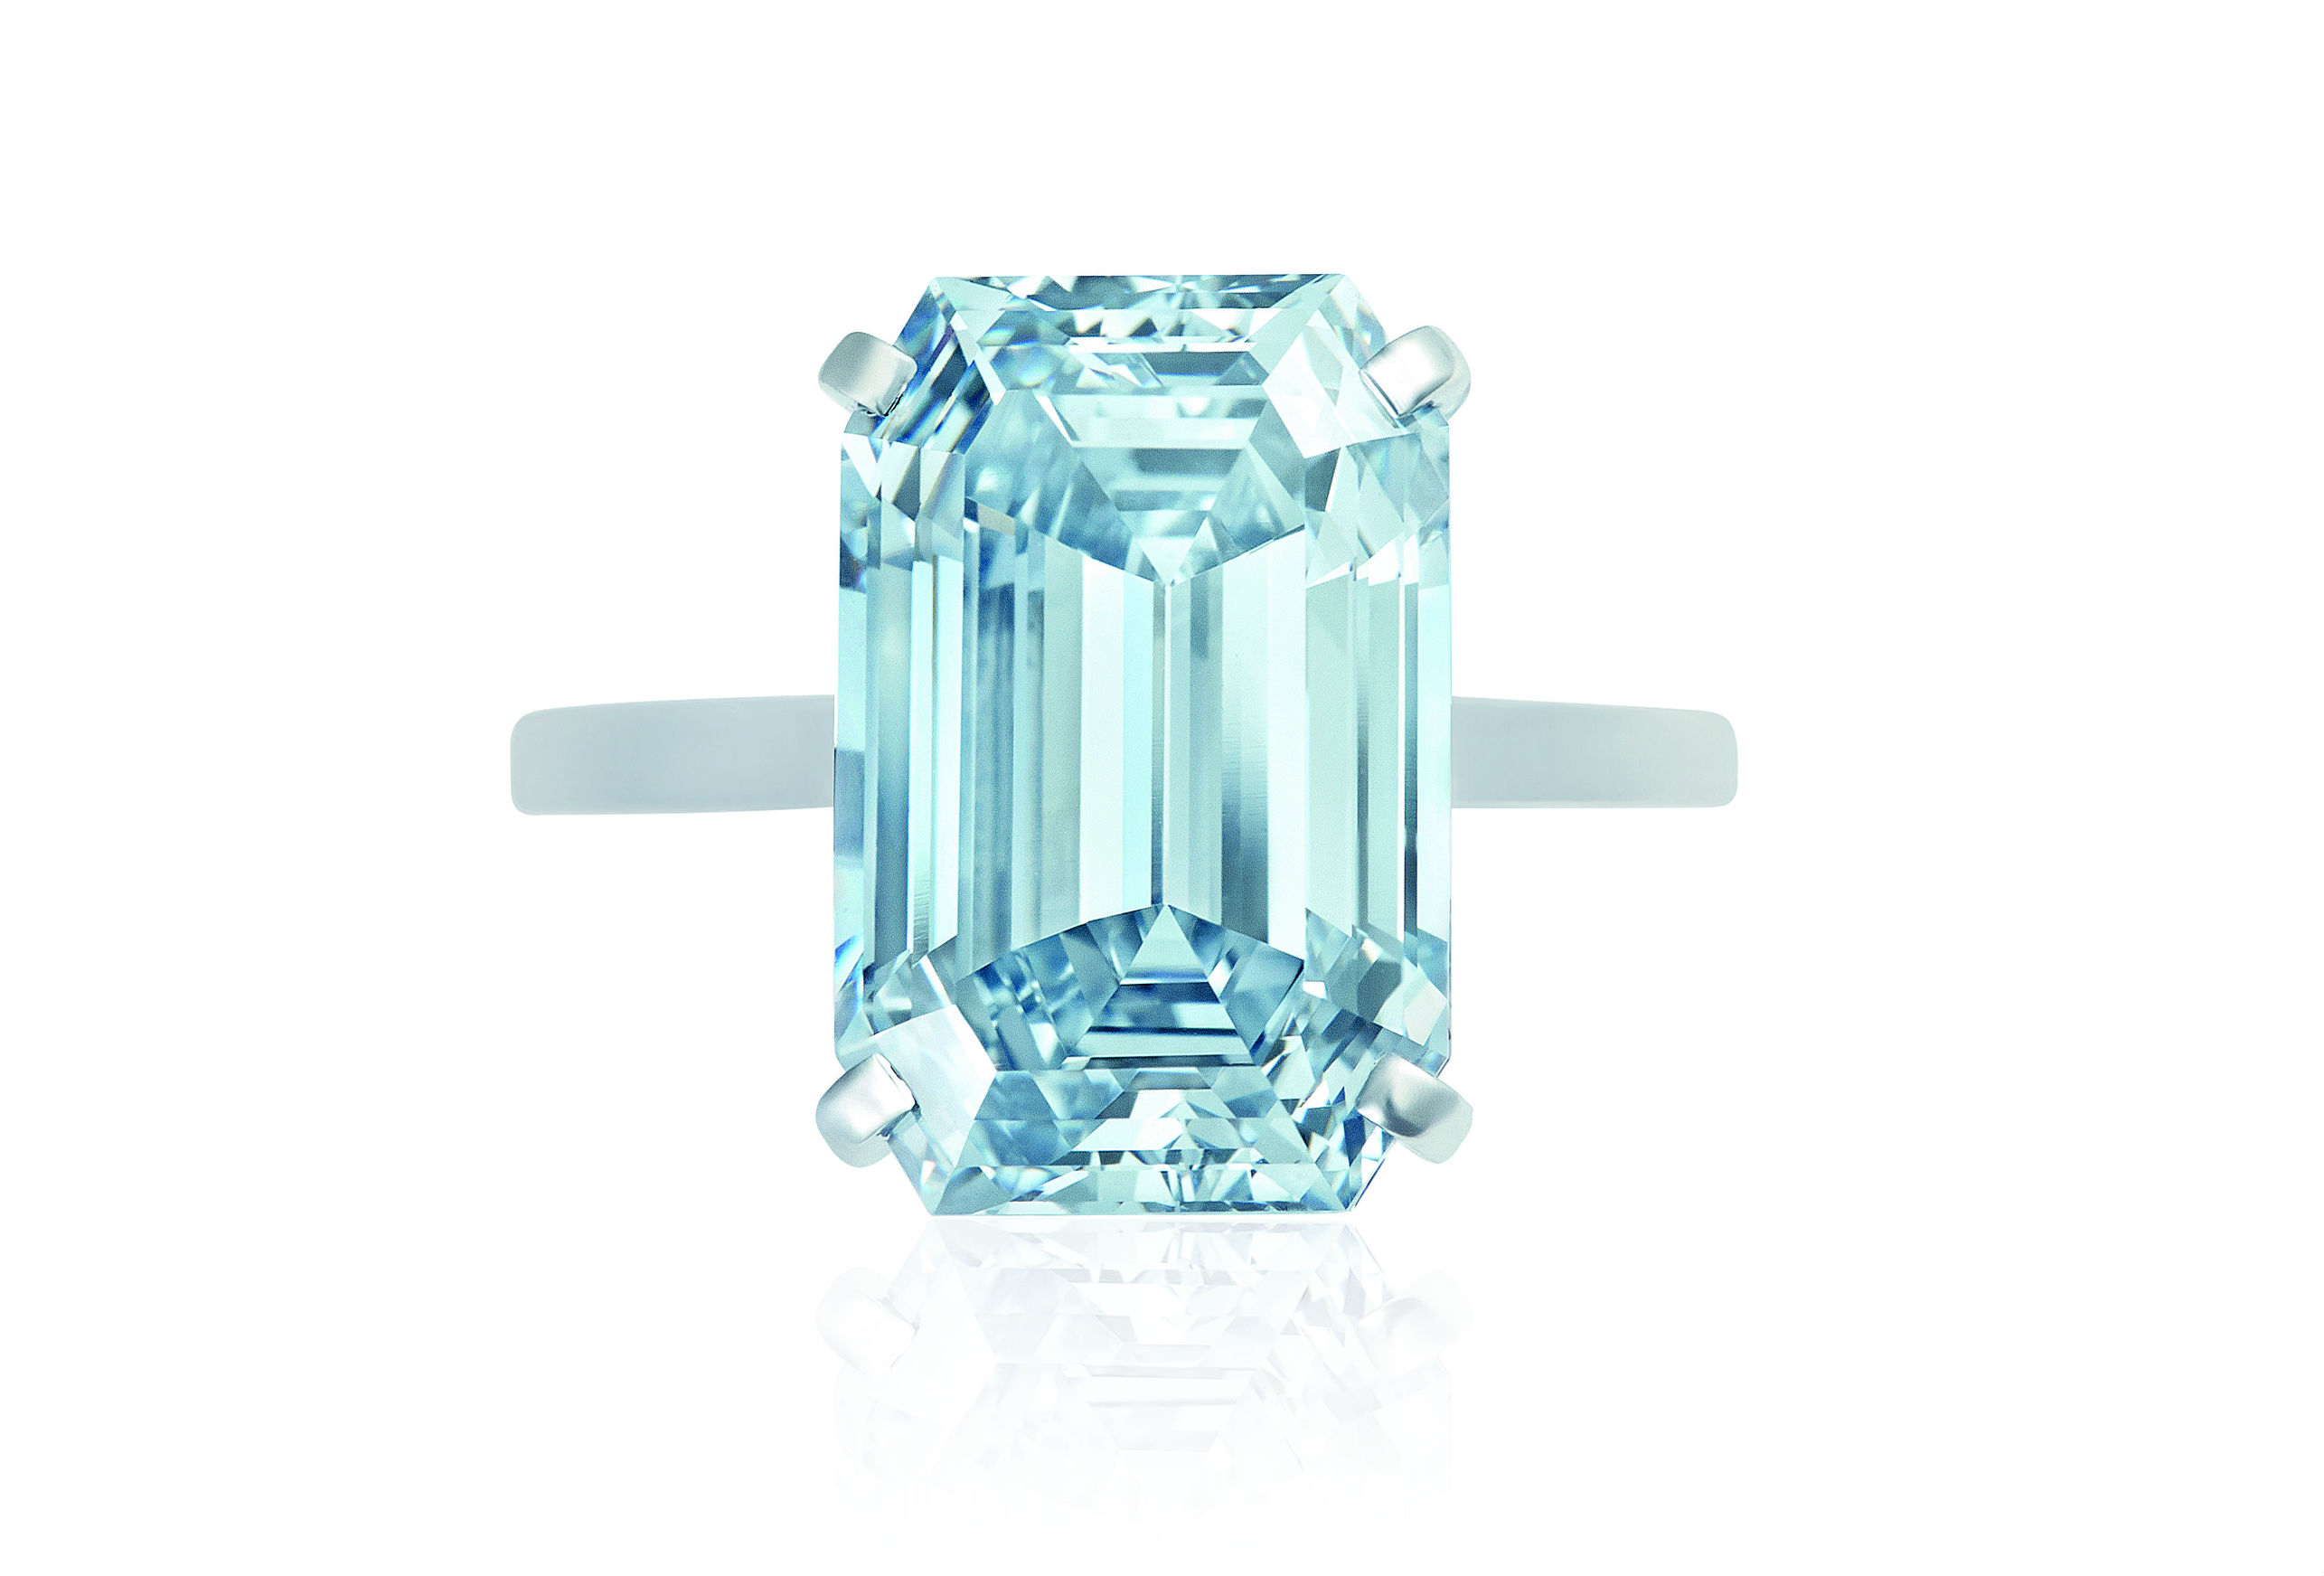 Diamante montato su anello, Christie's – Magnificent Jewels – Lotto 495 Diamante Fancy Intense Blue, IF di 8.67 cts. Venduto per $13'218'284.